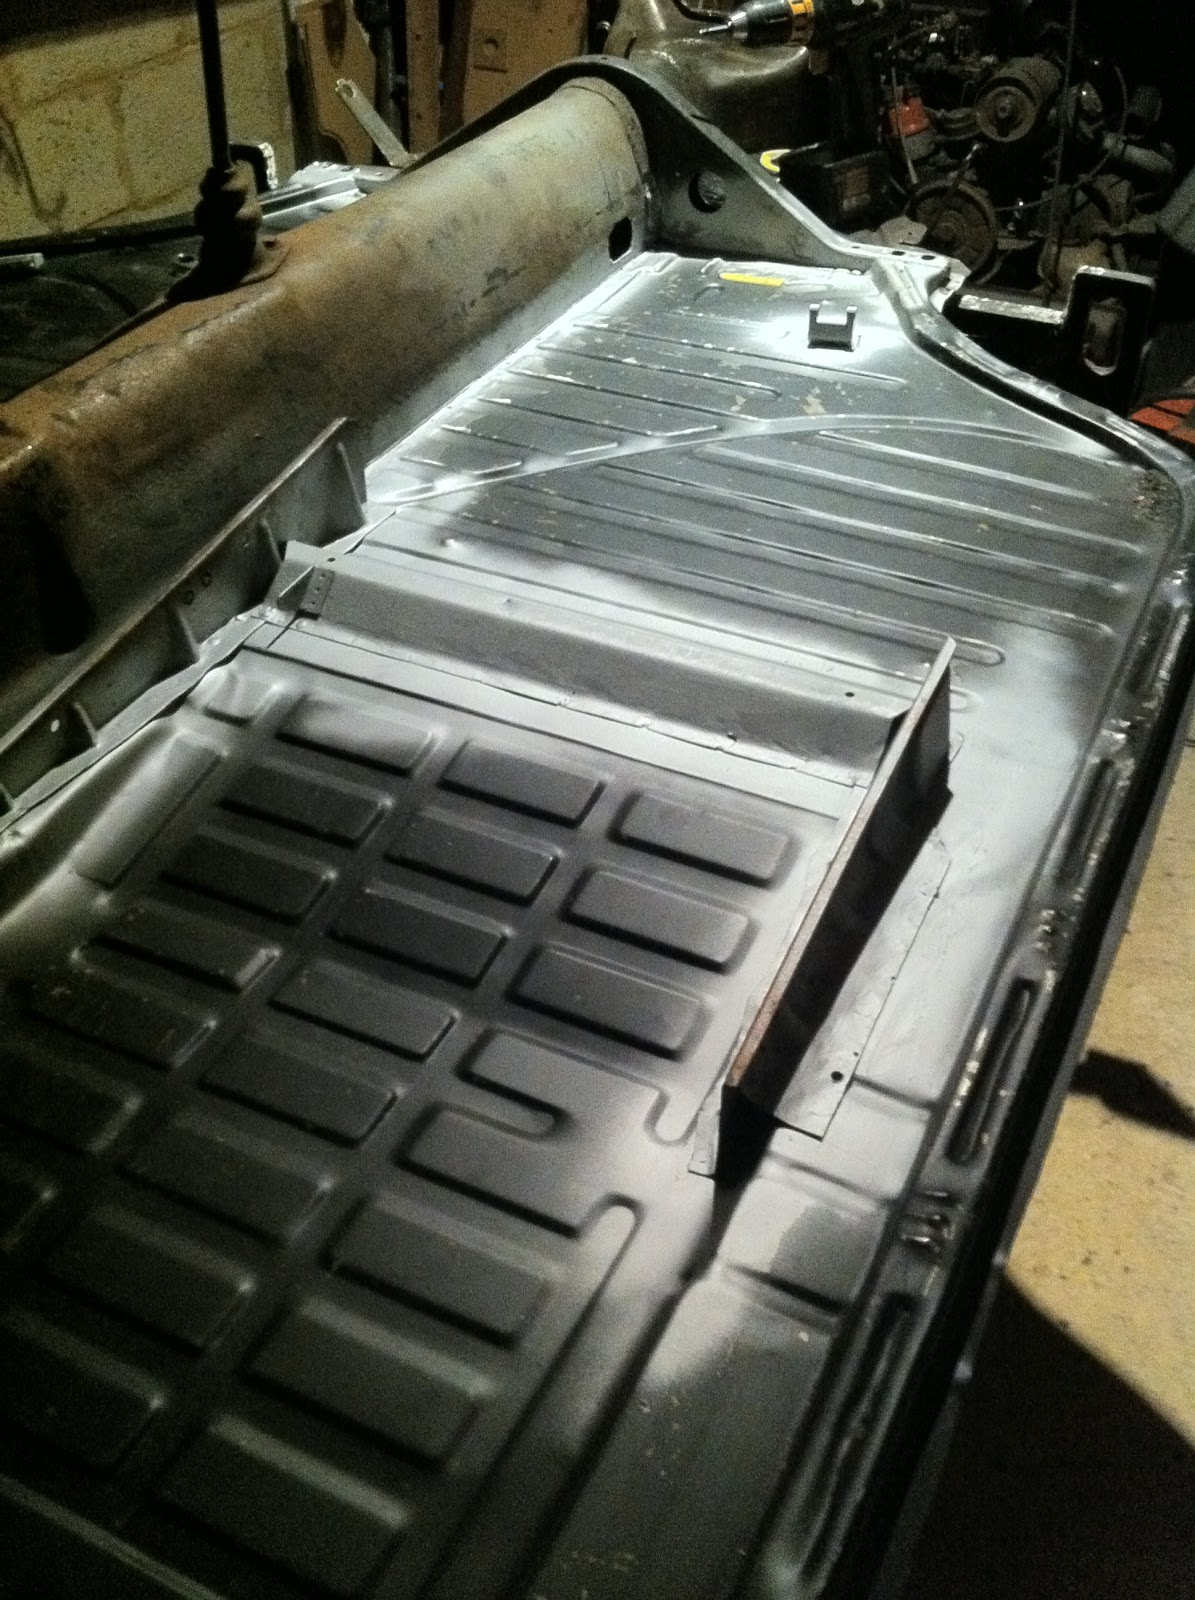 1969 Karmann Ghia Restoration Floor Pan Modifications